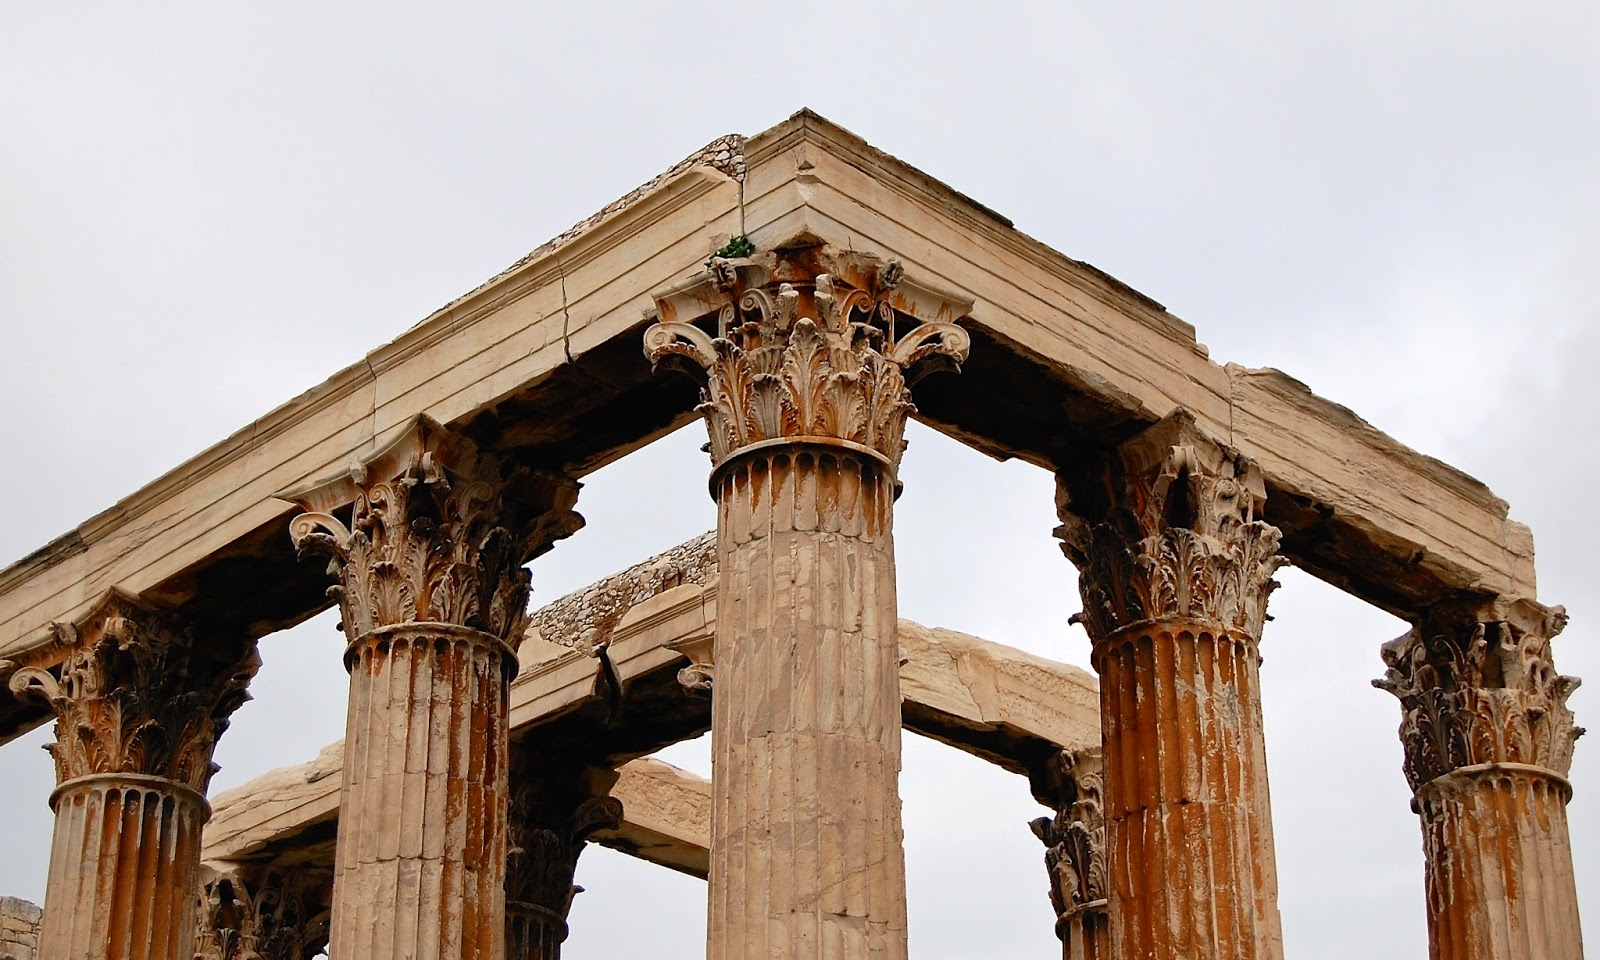 Corinthian capitals on the Temple of Olympian Zeus